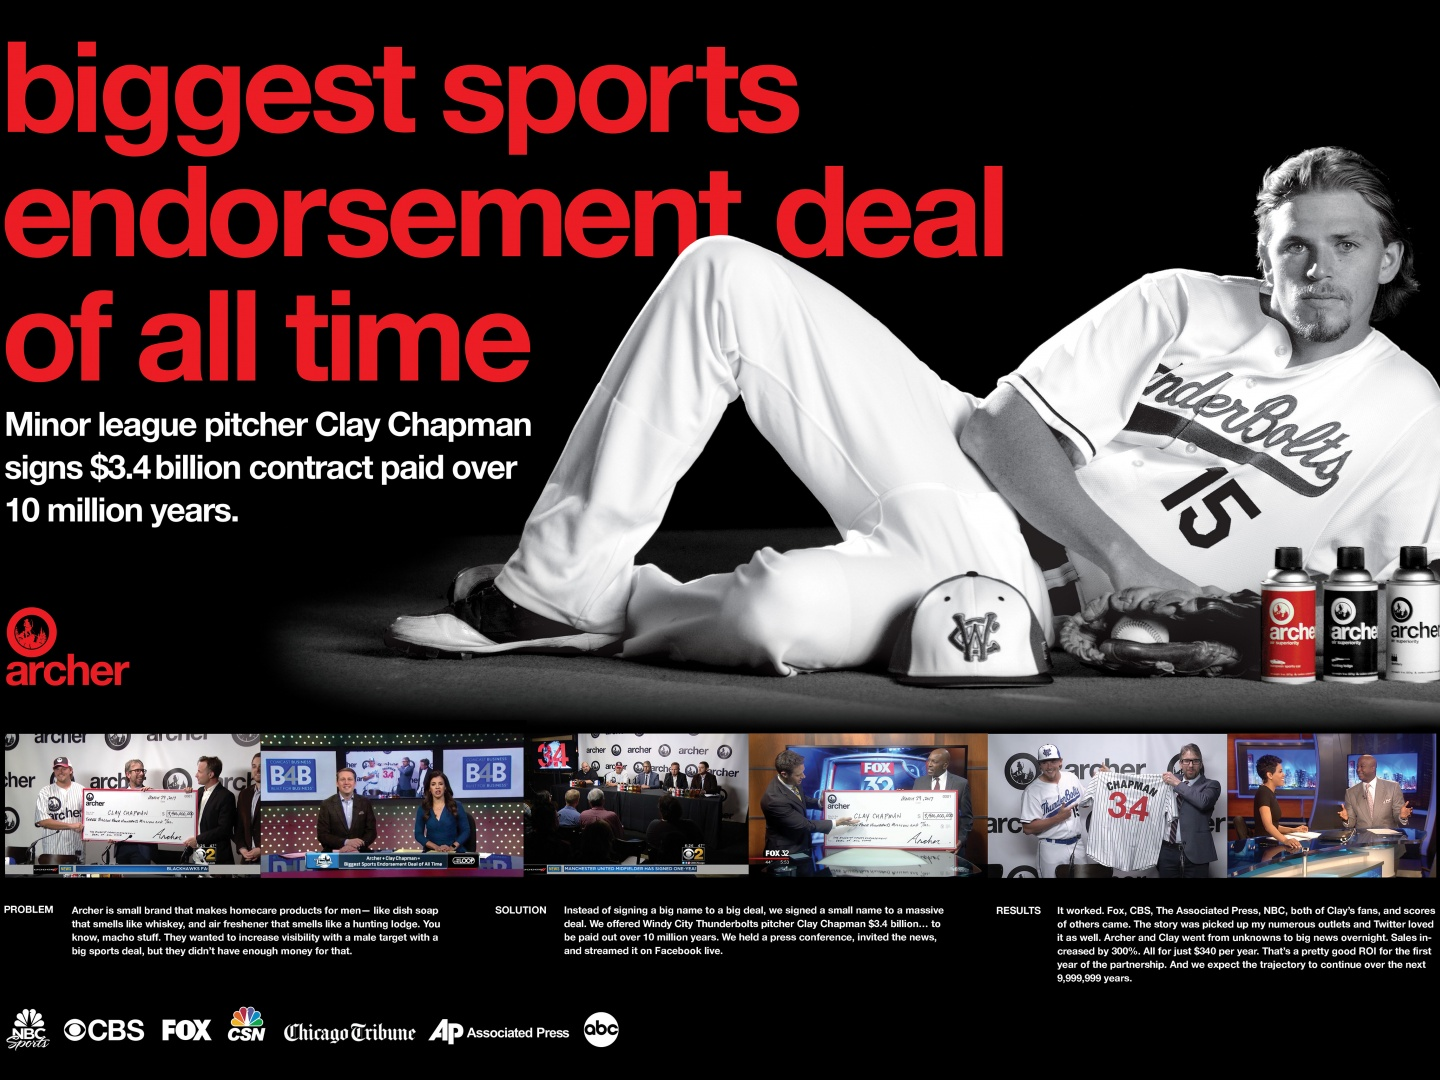 The Biggest Sports Endorsement Deal of All Time Thumbnail